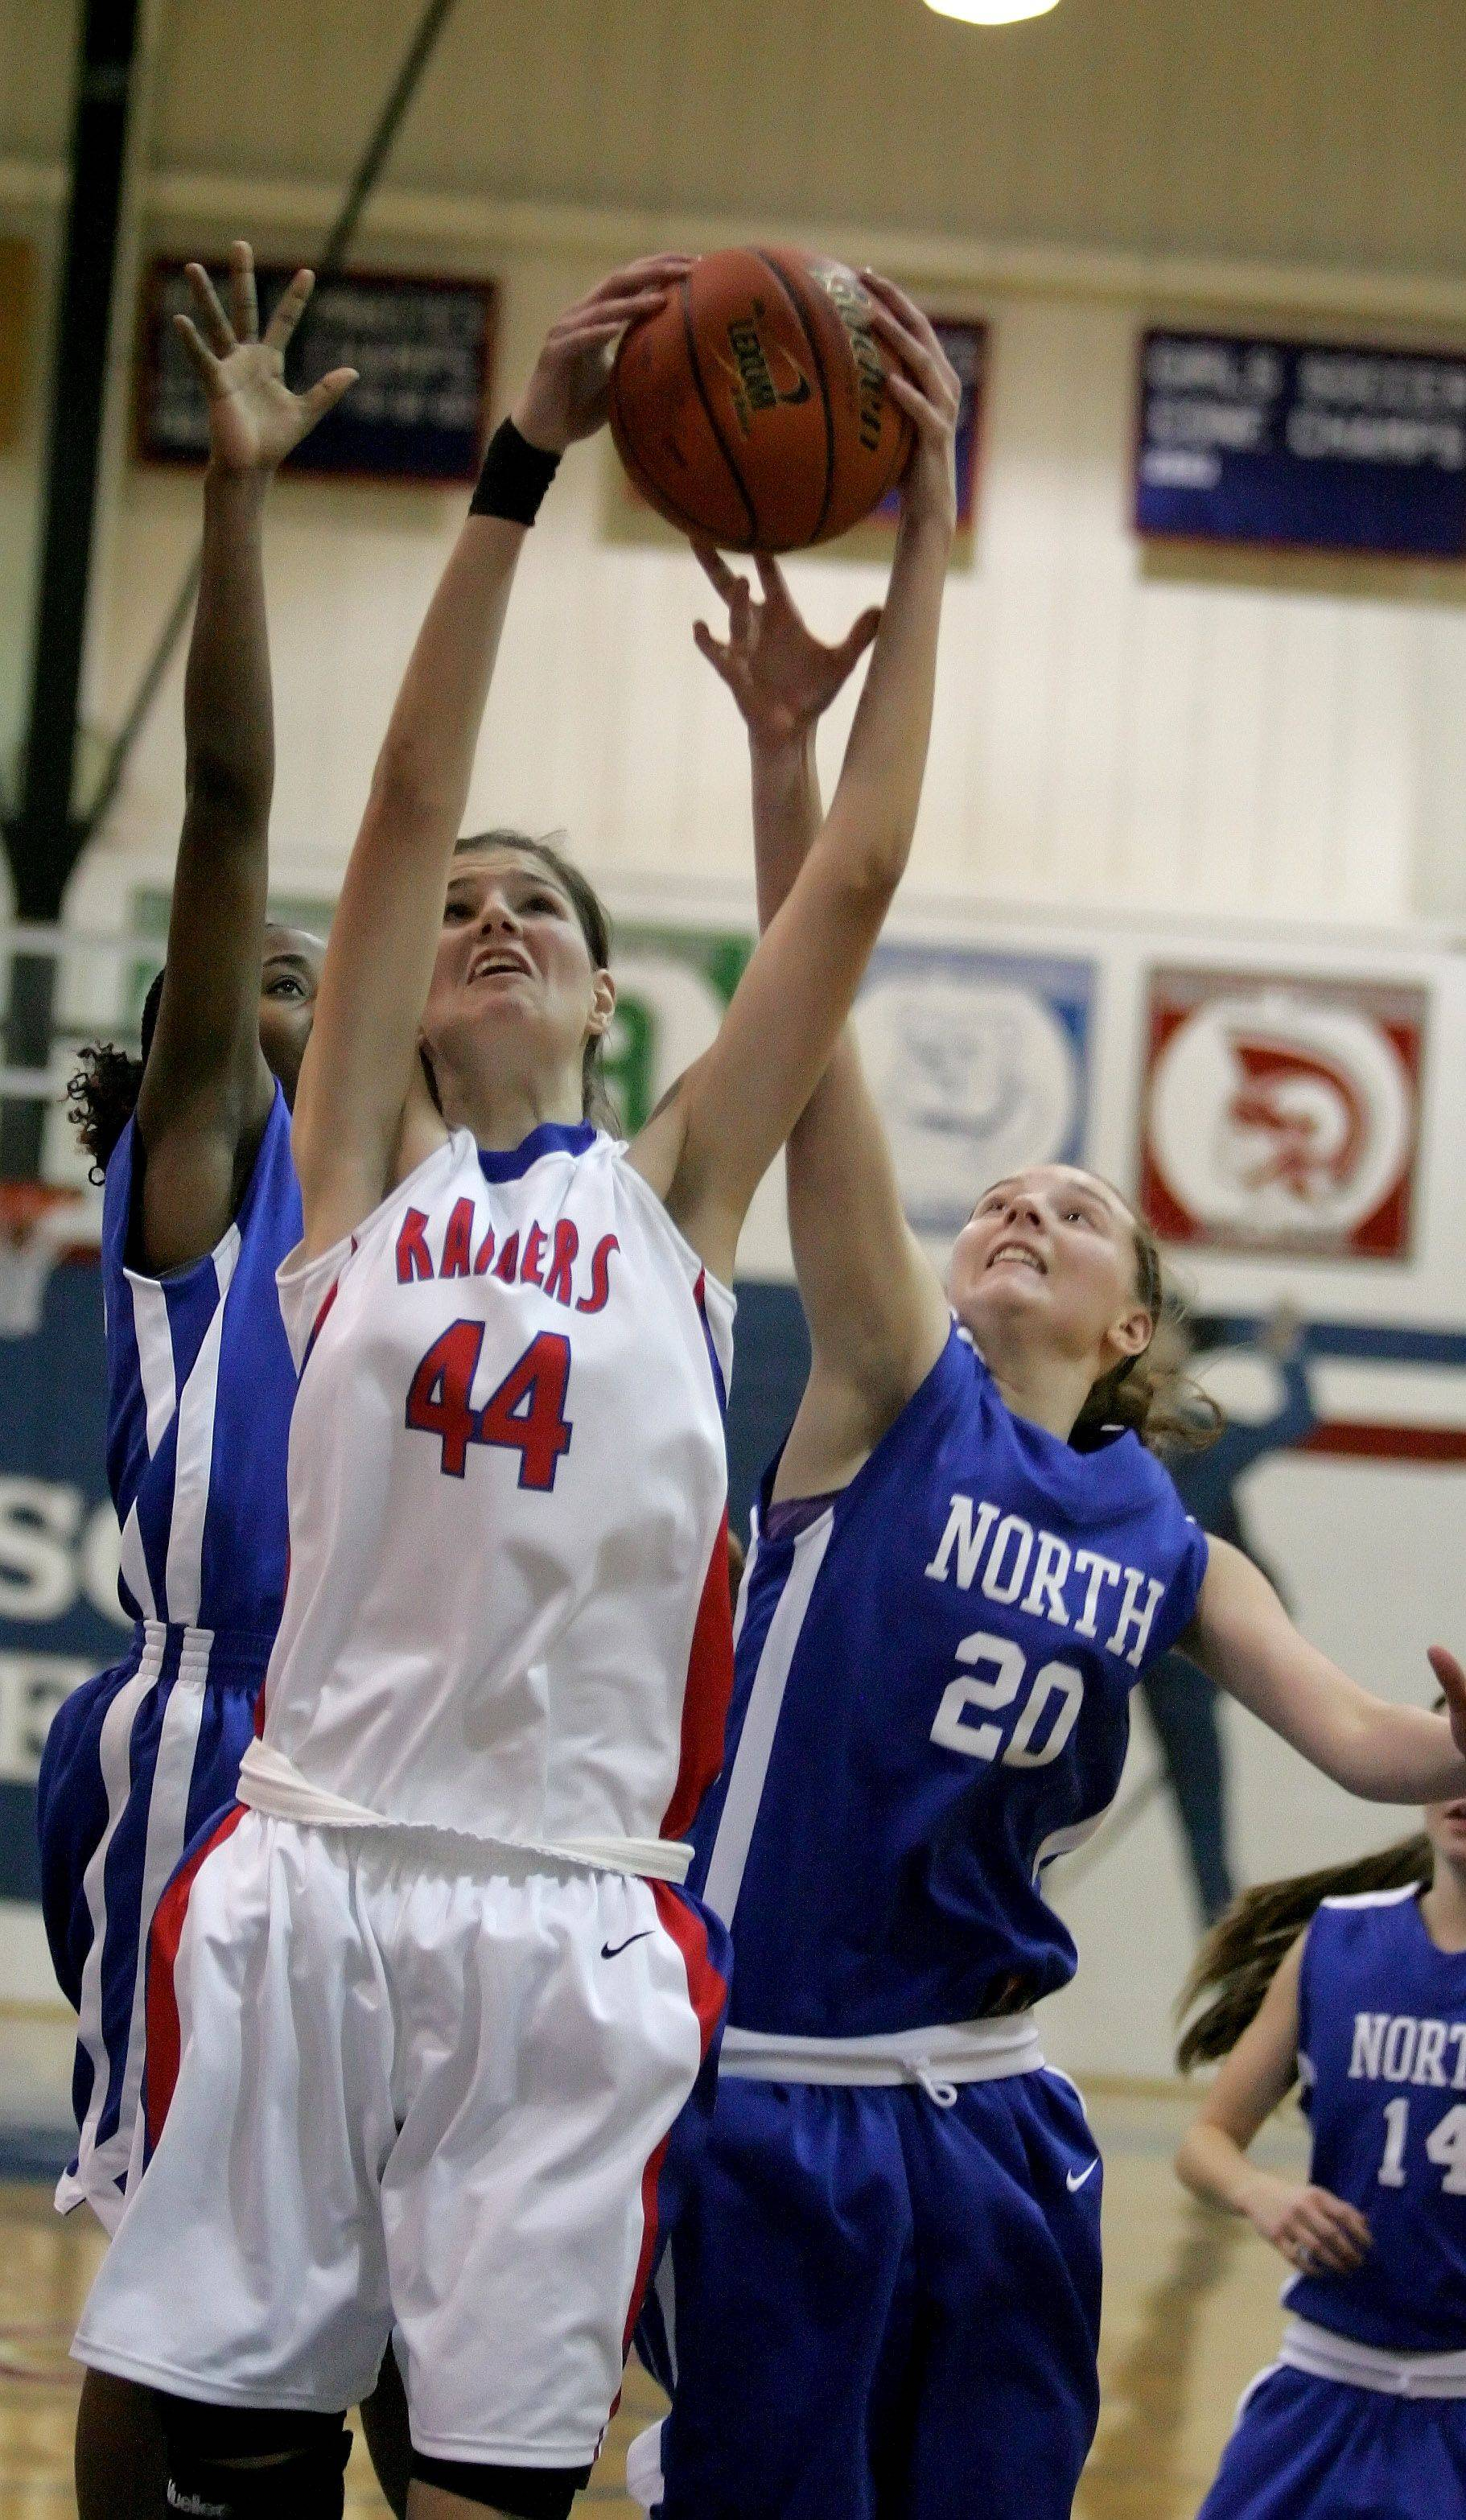 Nevena Markovic, left, of Glenbard South and Maddie Baillie, right, of Wheaton North go up for the rebound in girls basketball action Tuesday in Glen Ellyn.